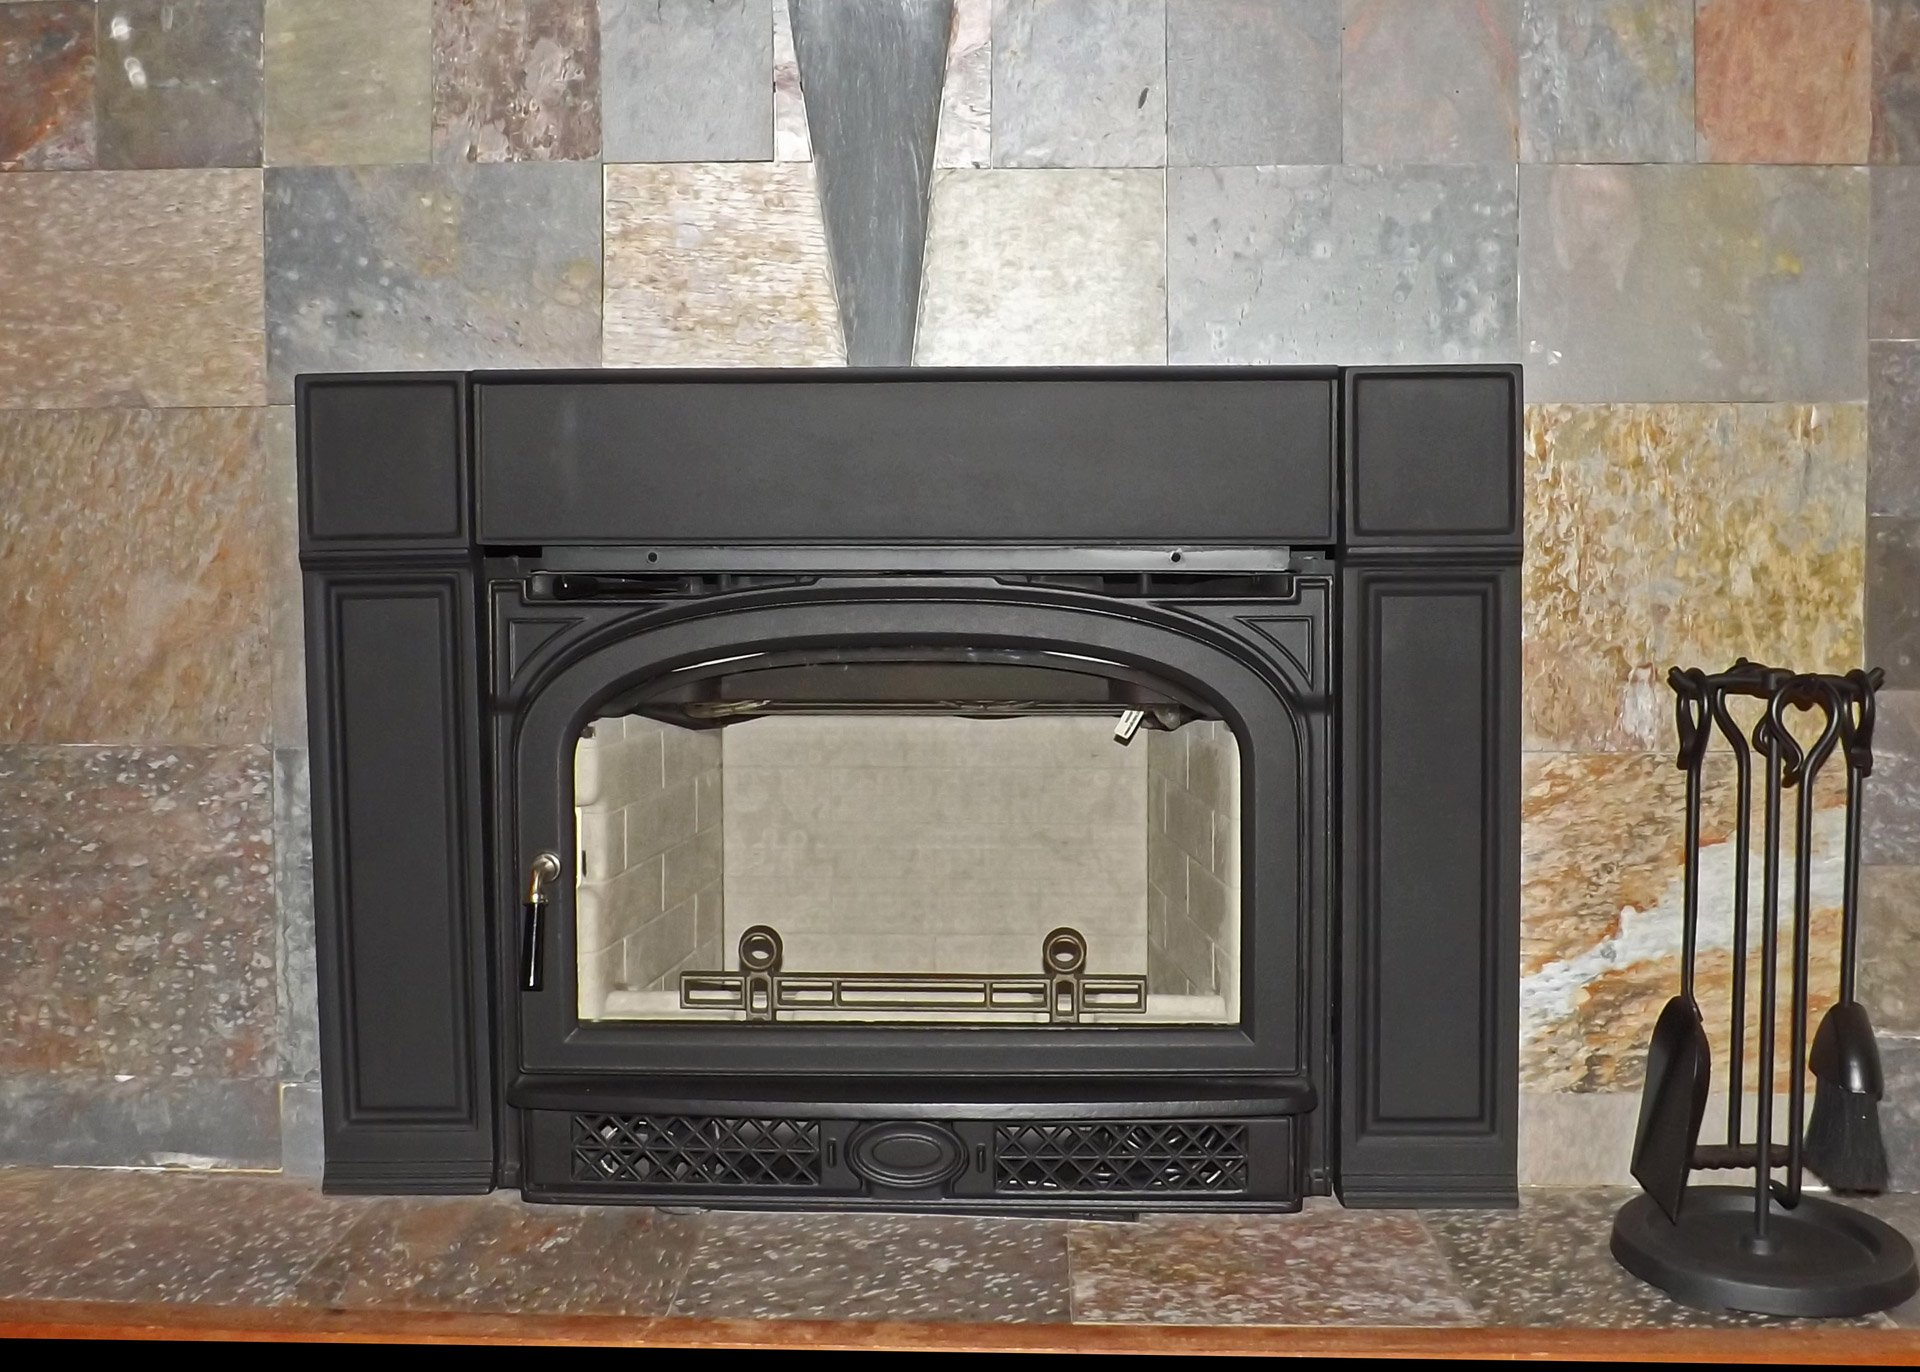 Propane Fireplace Cleaning Galleries Fire Place Inserts Wood Stoves And Fireplace